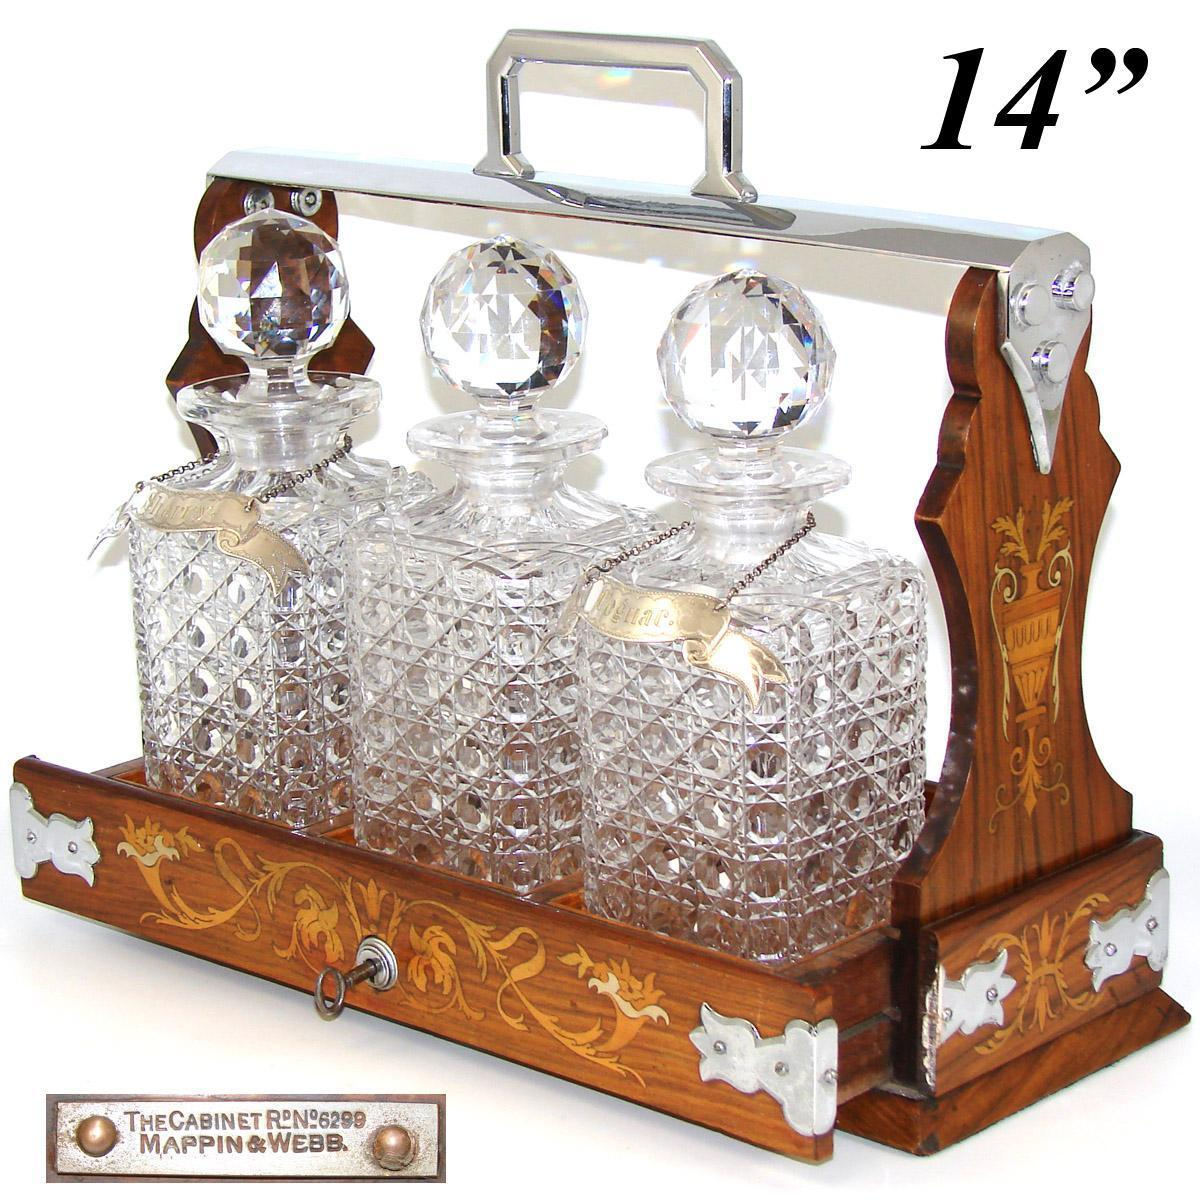 """Rare Antique Mappin & Webb """"The Cabinet"""" Liquor Tantalus, Marquetry Inlay & 3 Cut Crystal Decanters"""